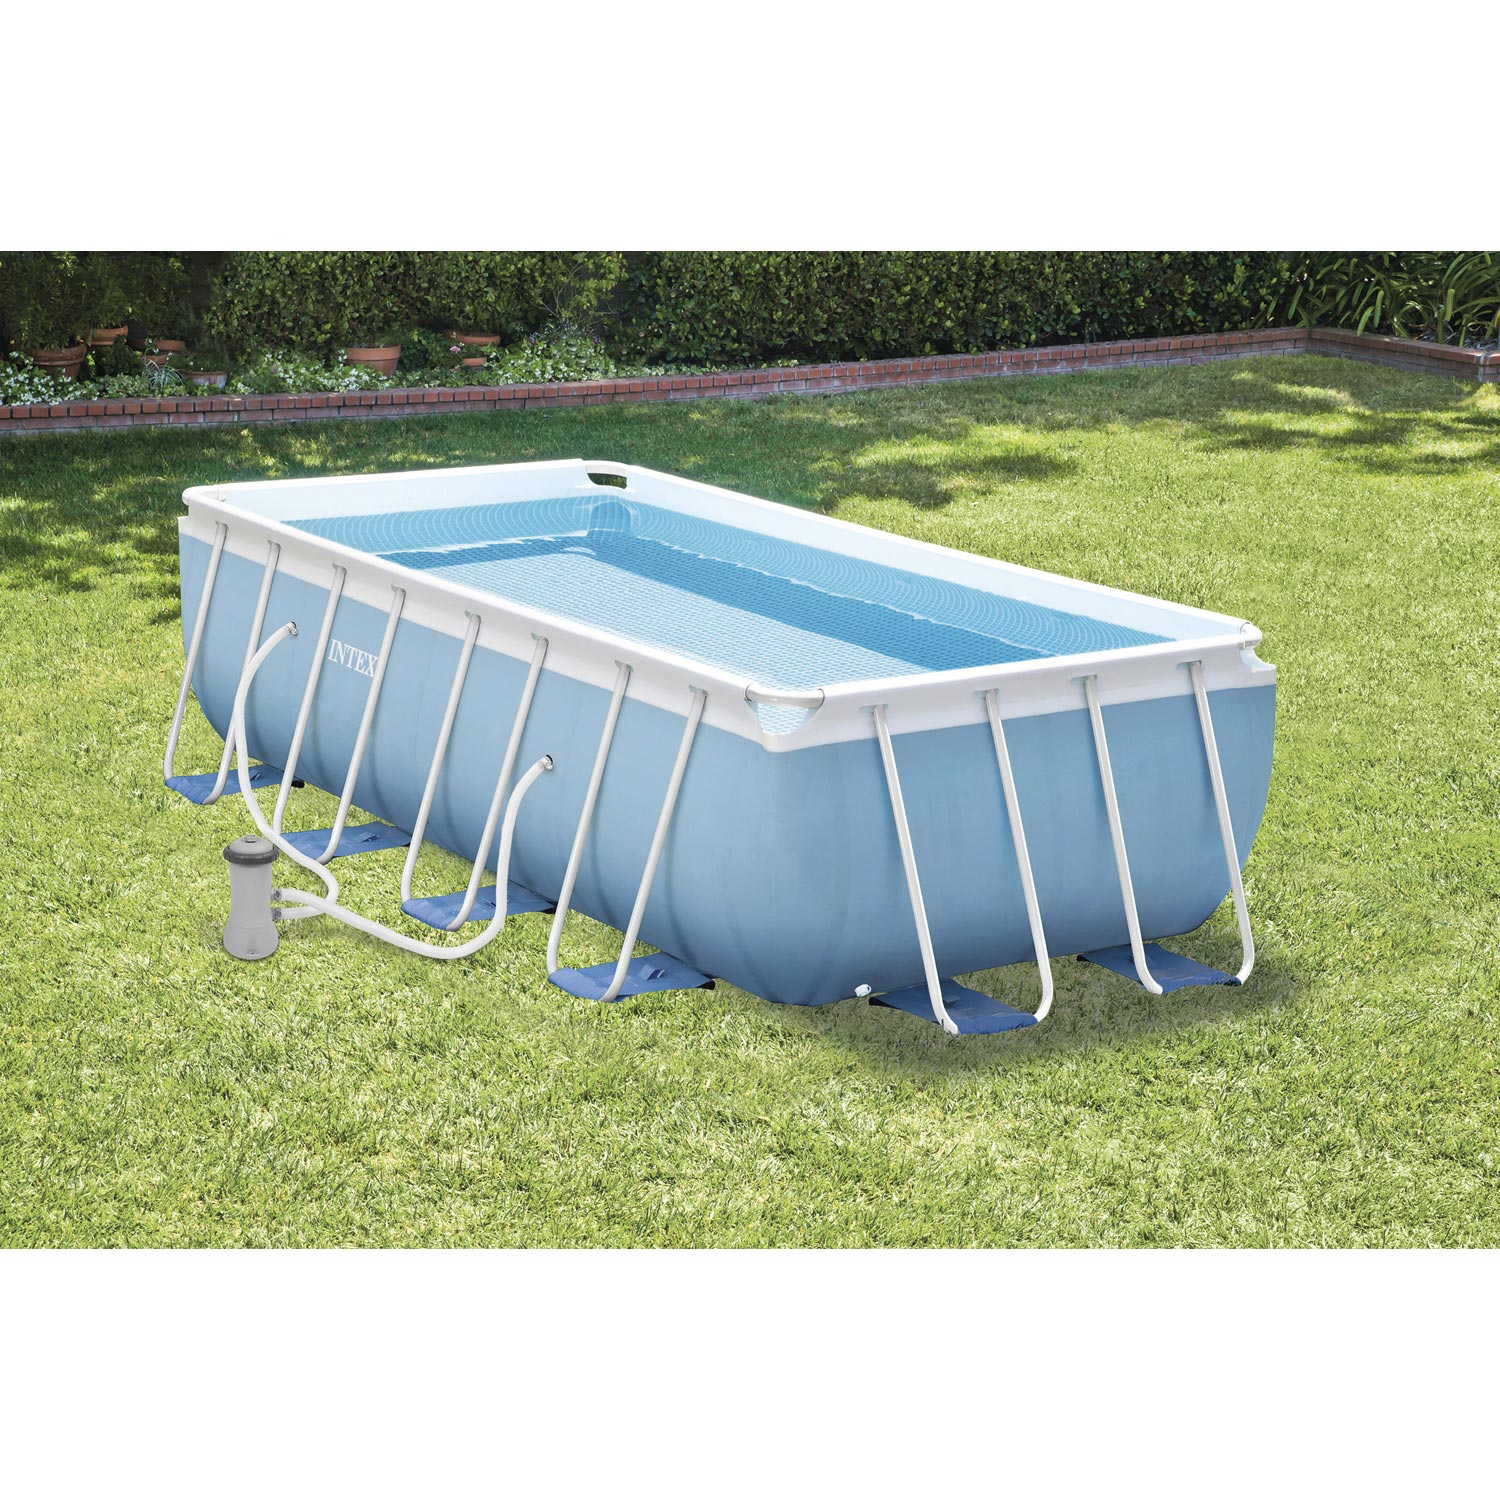 Piscine hors sol autoportante tubulaire prism frame intex for Piscine hors sol ebay